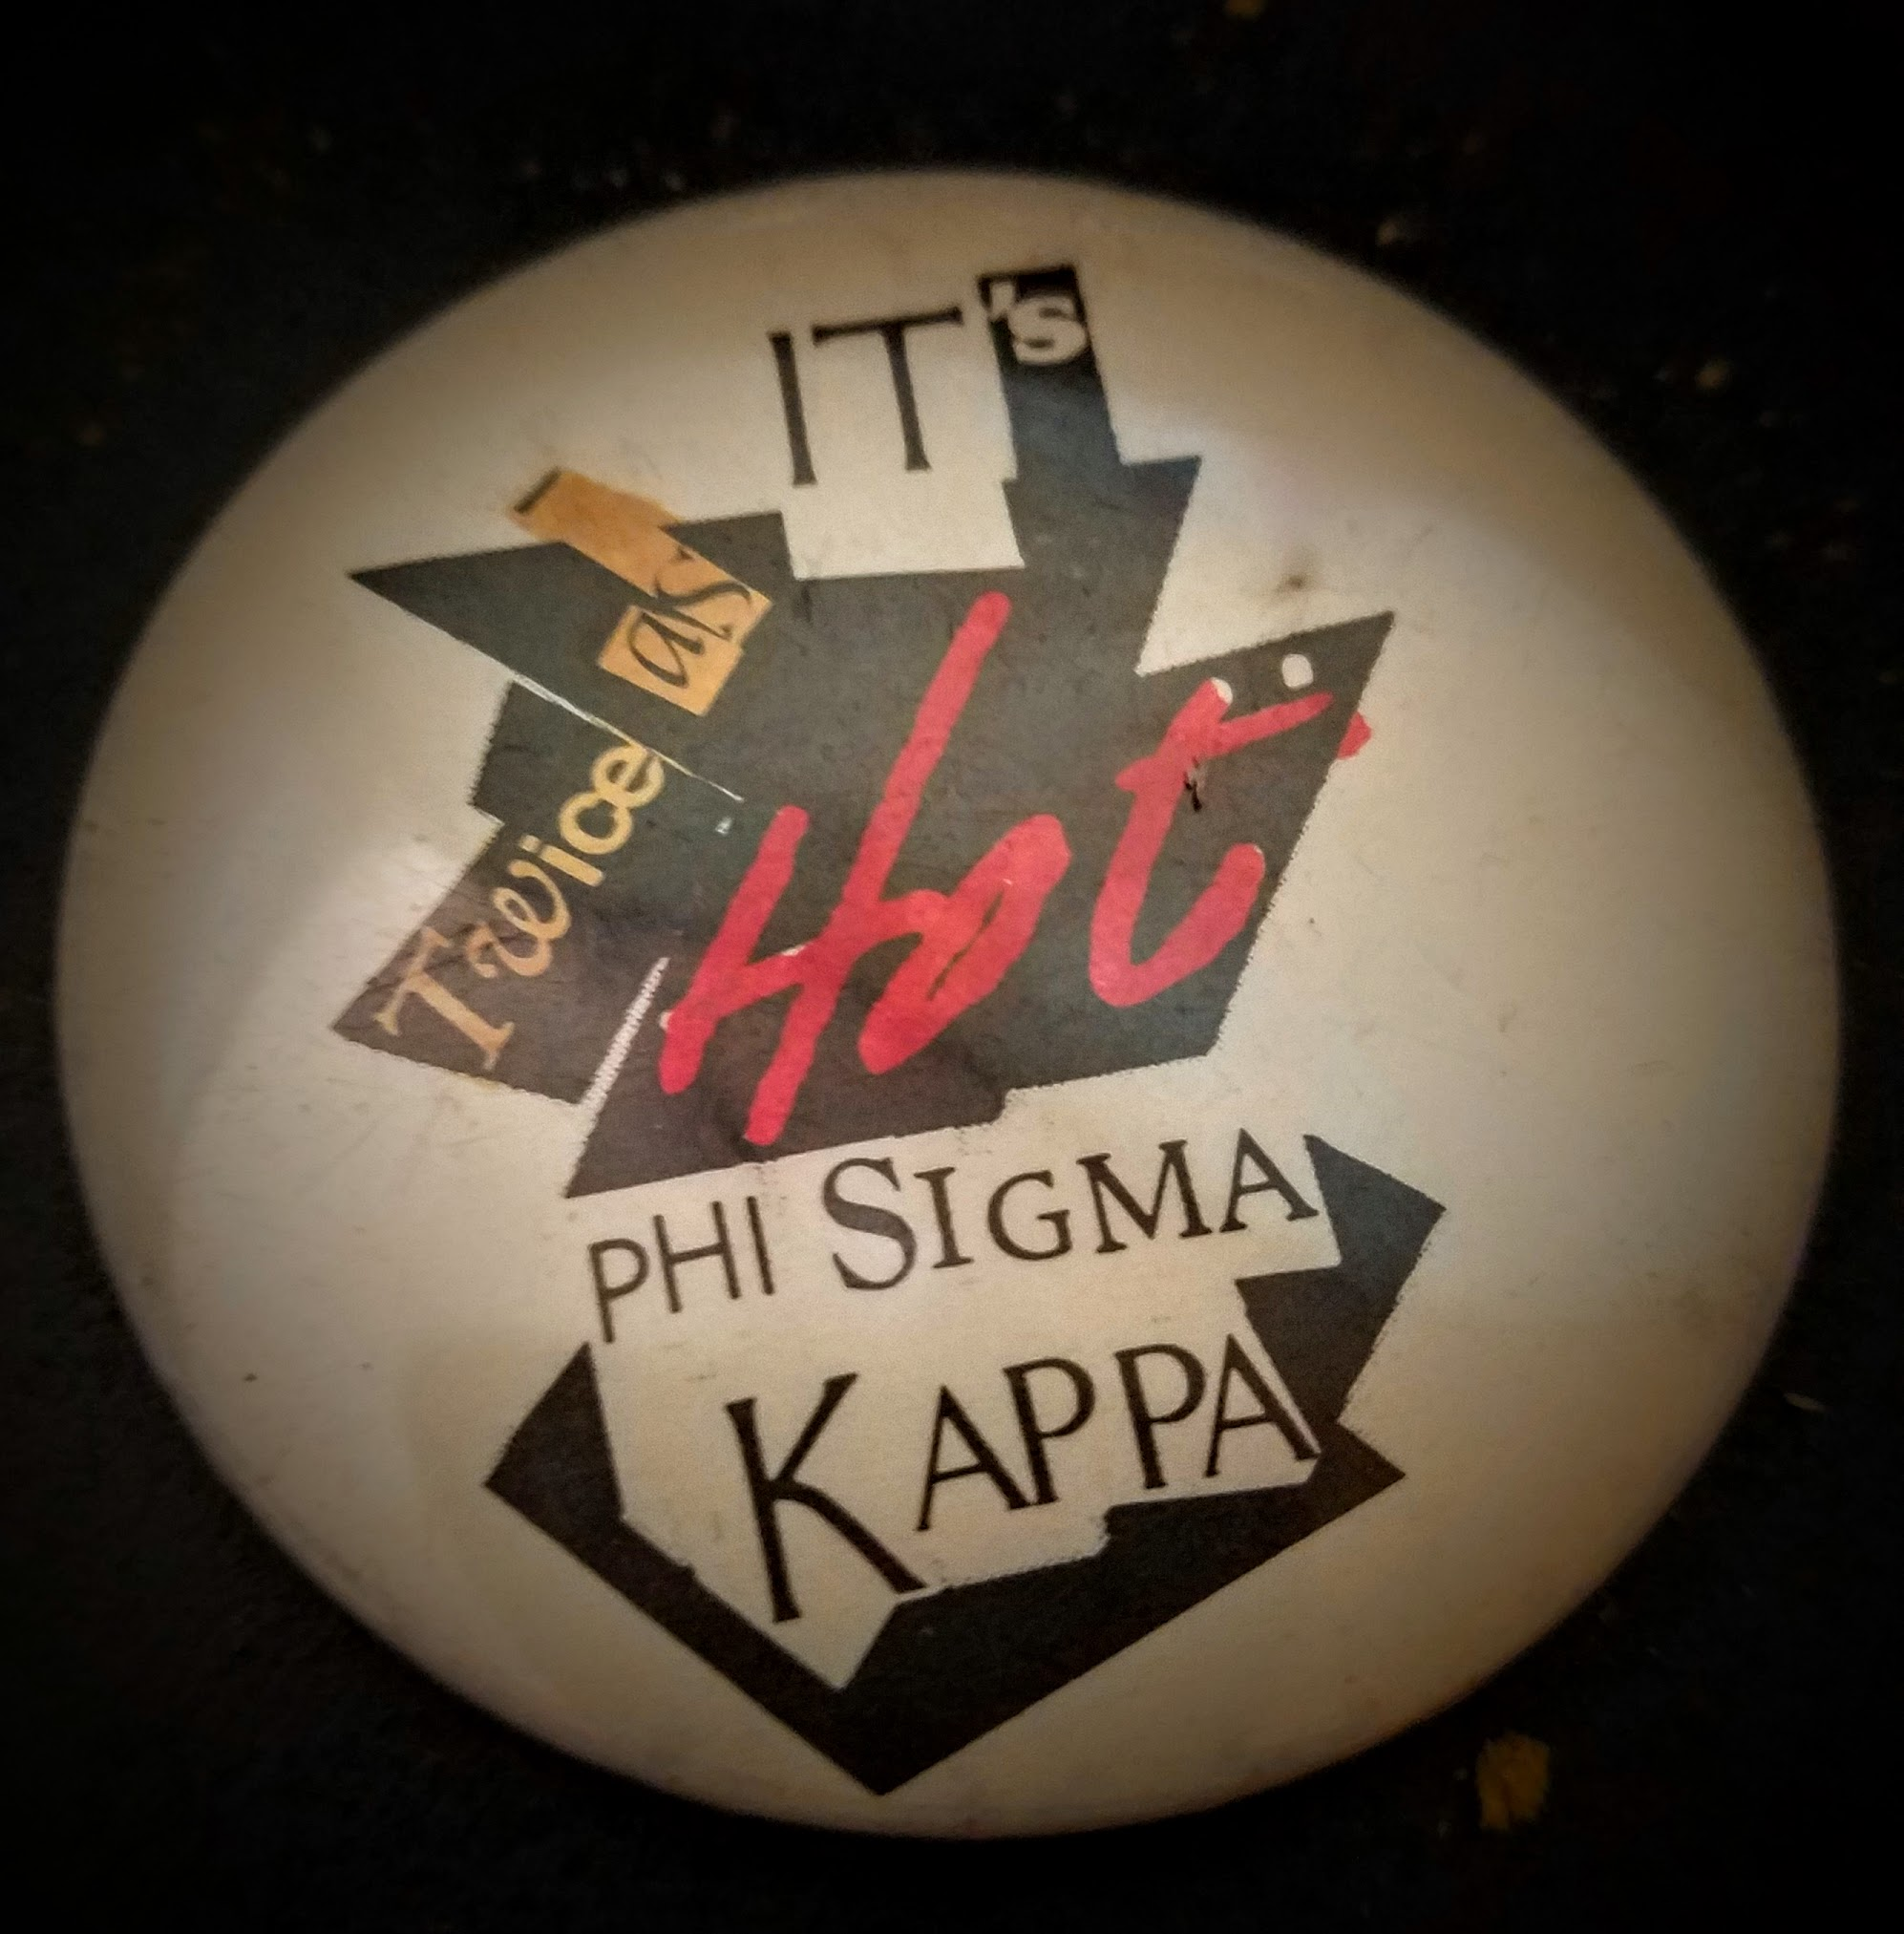 Hot at the phi sigs